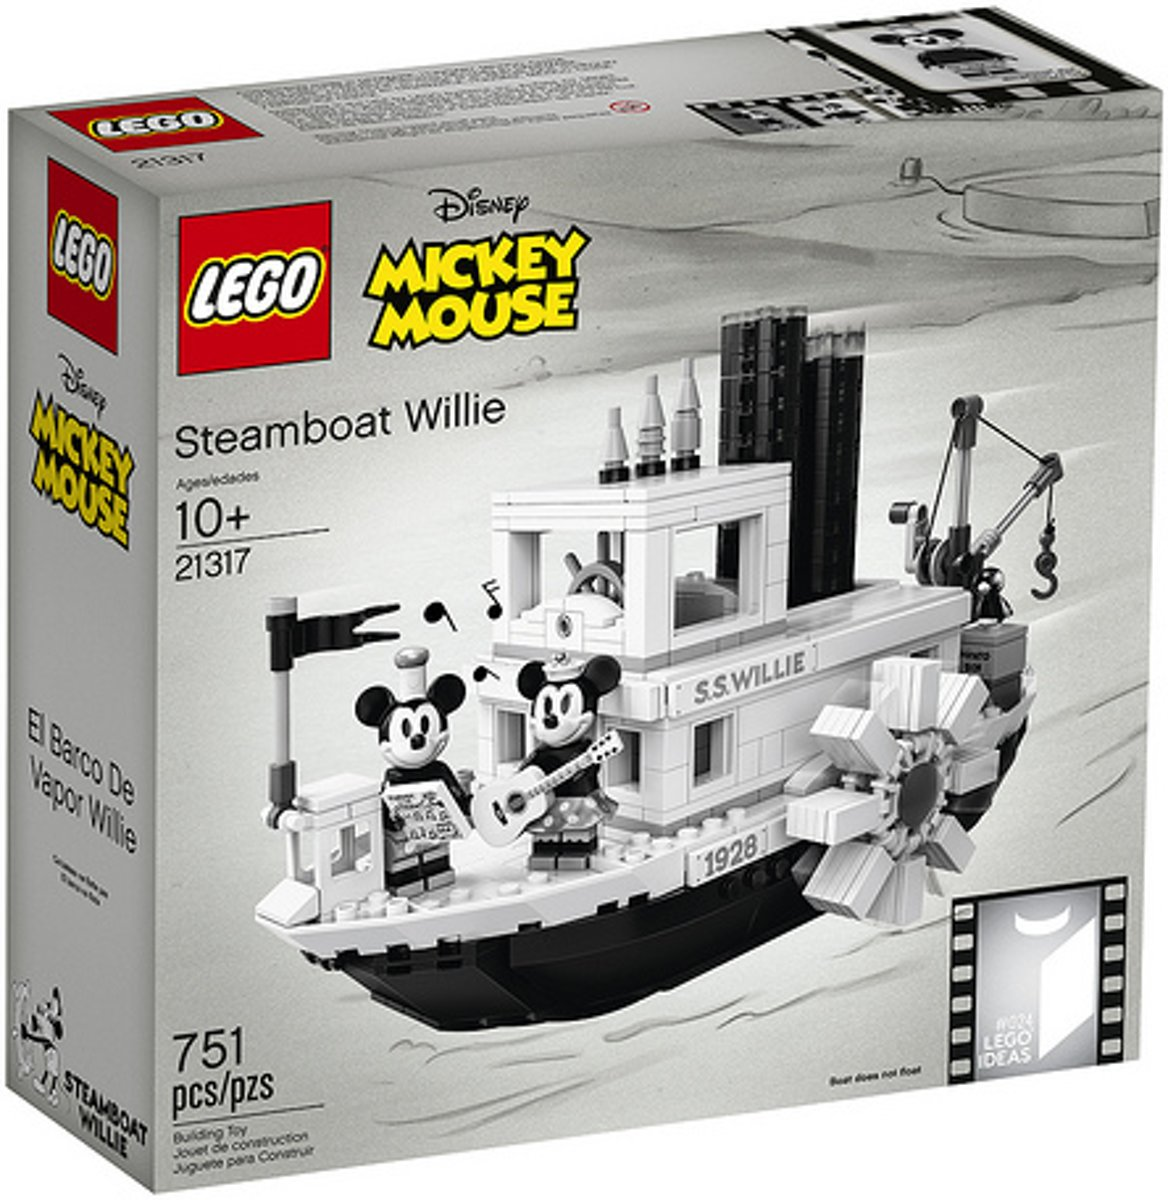 LEGO - Steamboat Willie (21317)